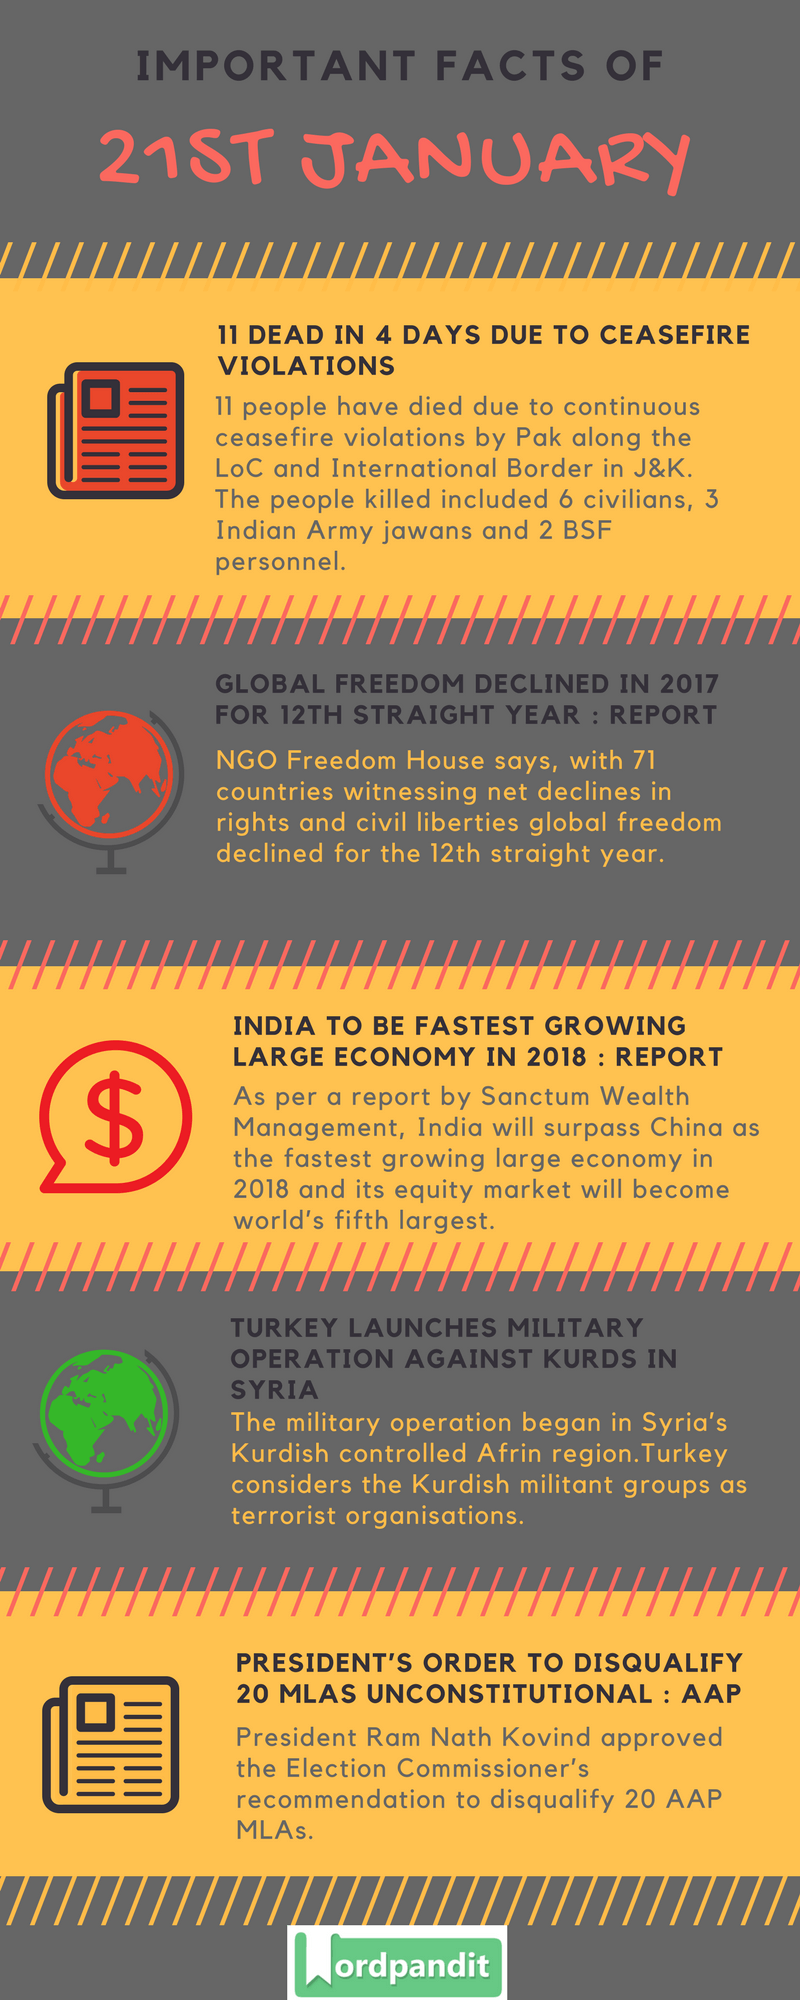 Daily Current Affairs 21 january 2018 Current Affairs Quiz january 21 2018 Current Affairs Infographic